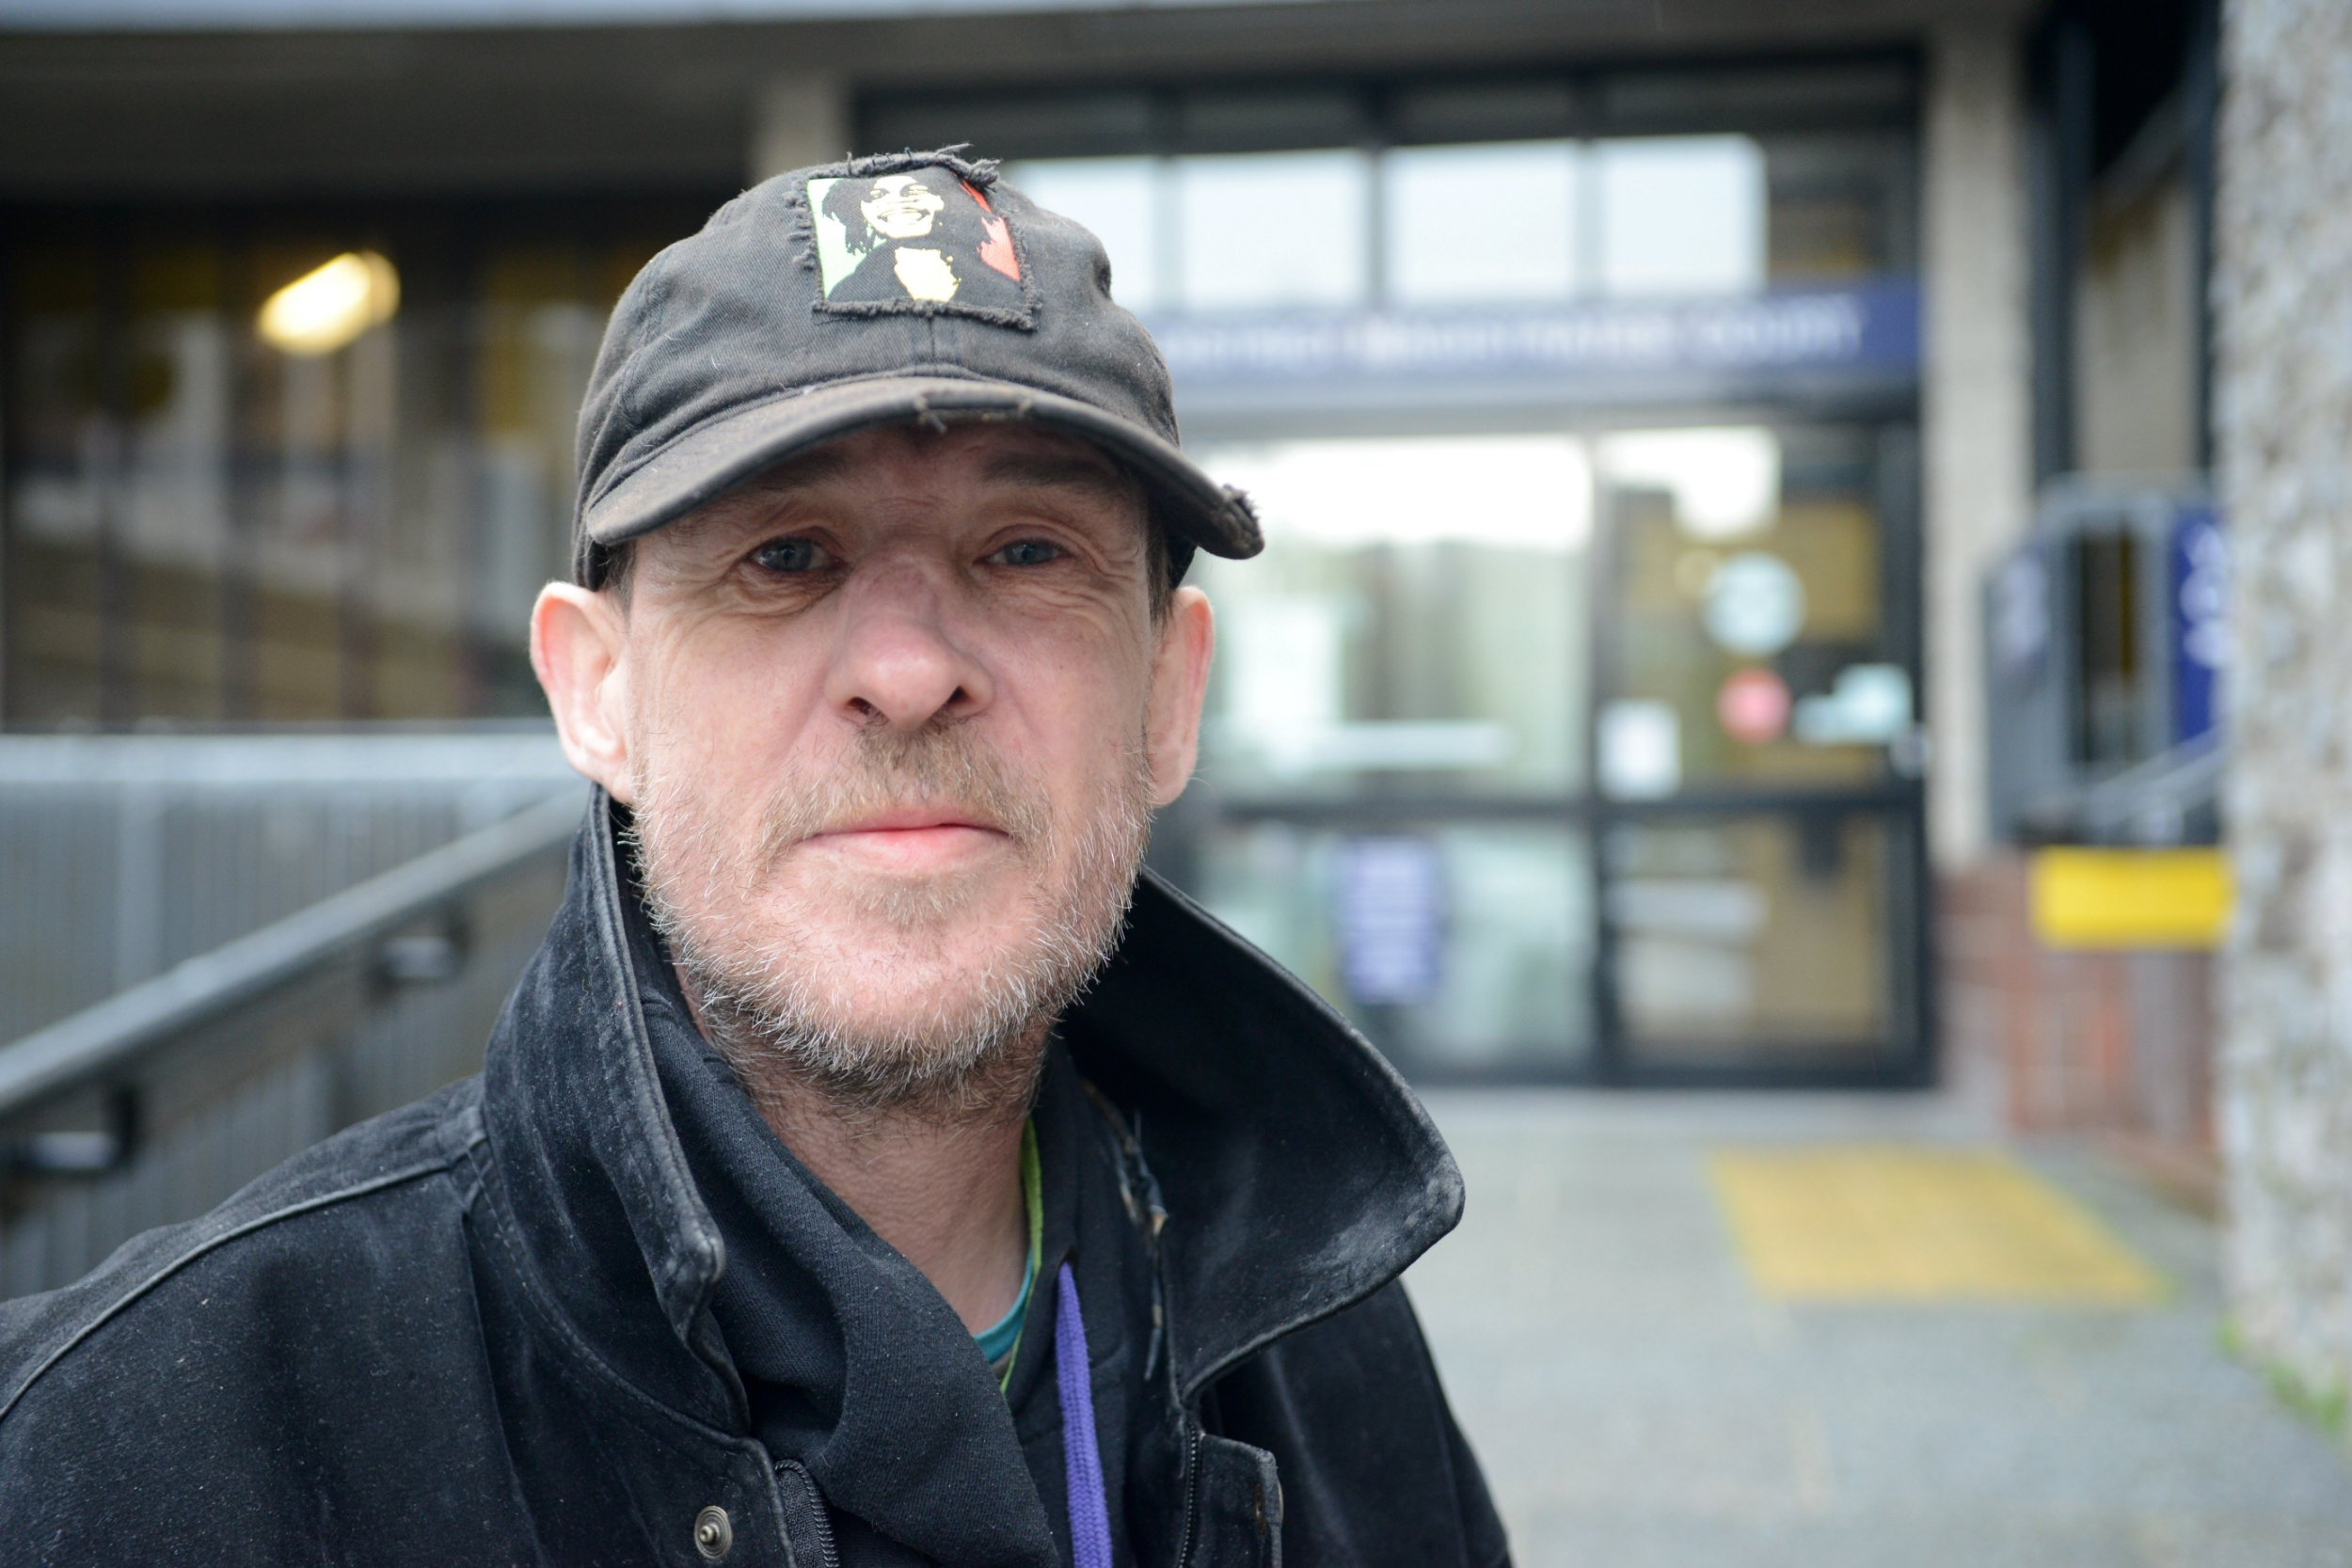 Man banned from loudly playing Lily Allen music anywhere in city